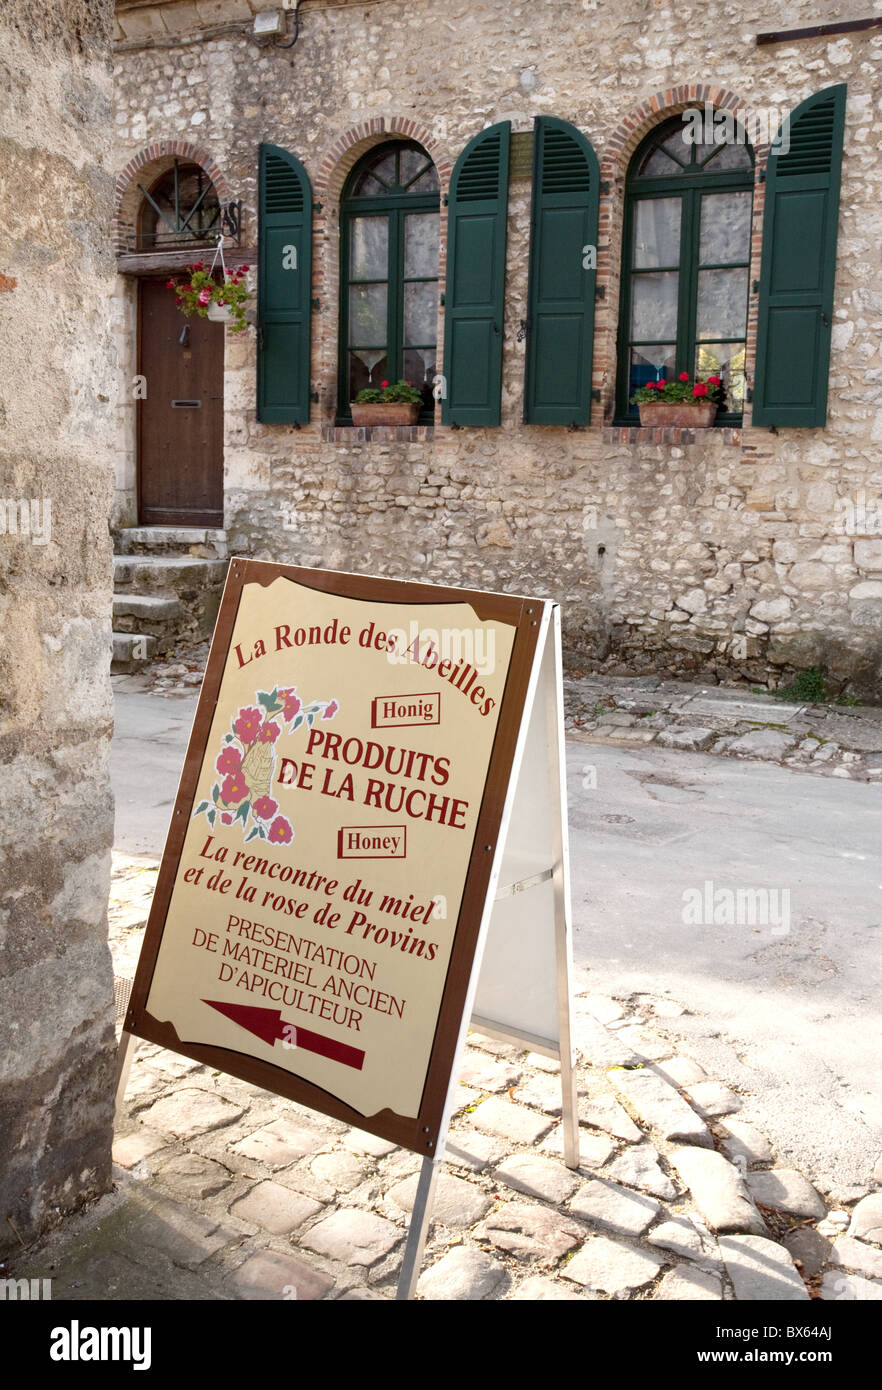 Local produce sign in the streets of the medieval town of Provins, seine et marne, France - Stock Image